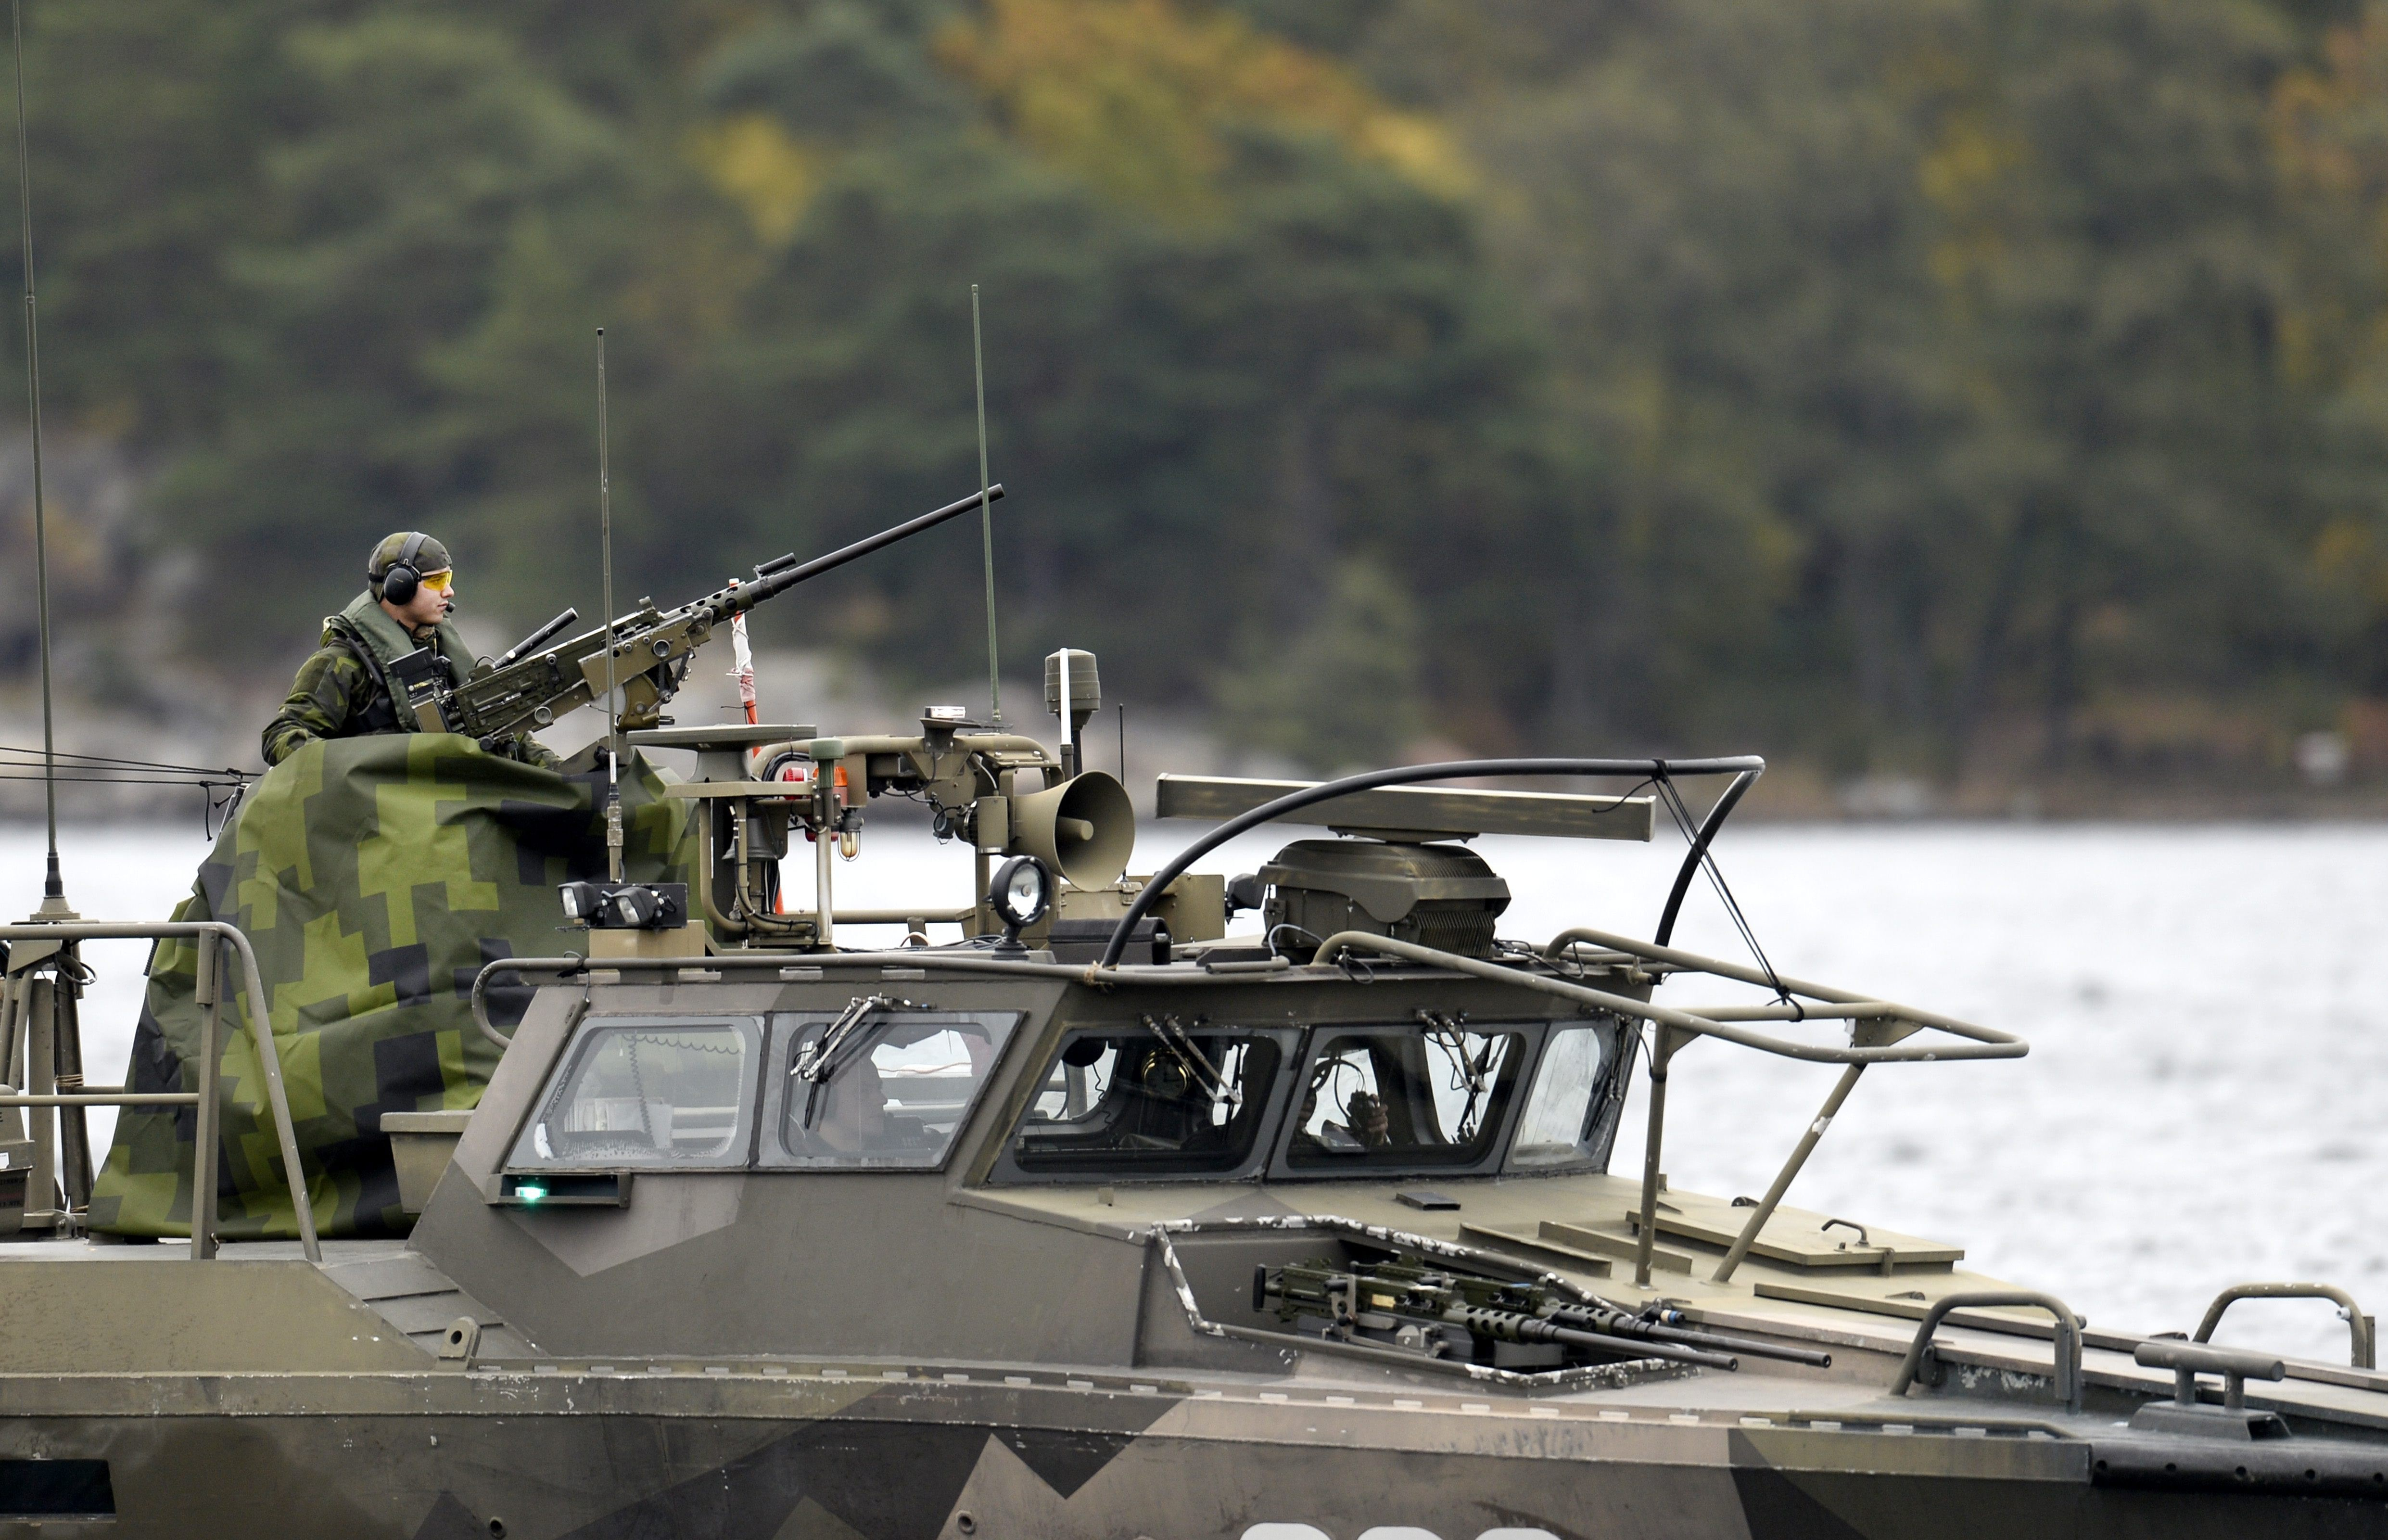 A Swedish Navy fast-attack craft patrols in the the Stockholm Archipelago, Sweden, on October 18 2014. The Swedish armed forces launched a military operation around the islands off Stockholm following reports of suspicious 'foreign underwater activity'.(Pontus Lundahl/AFP/Getty Images)